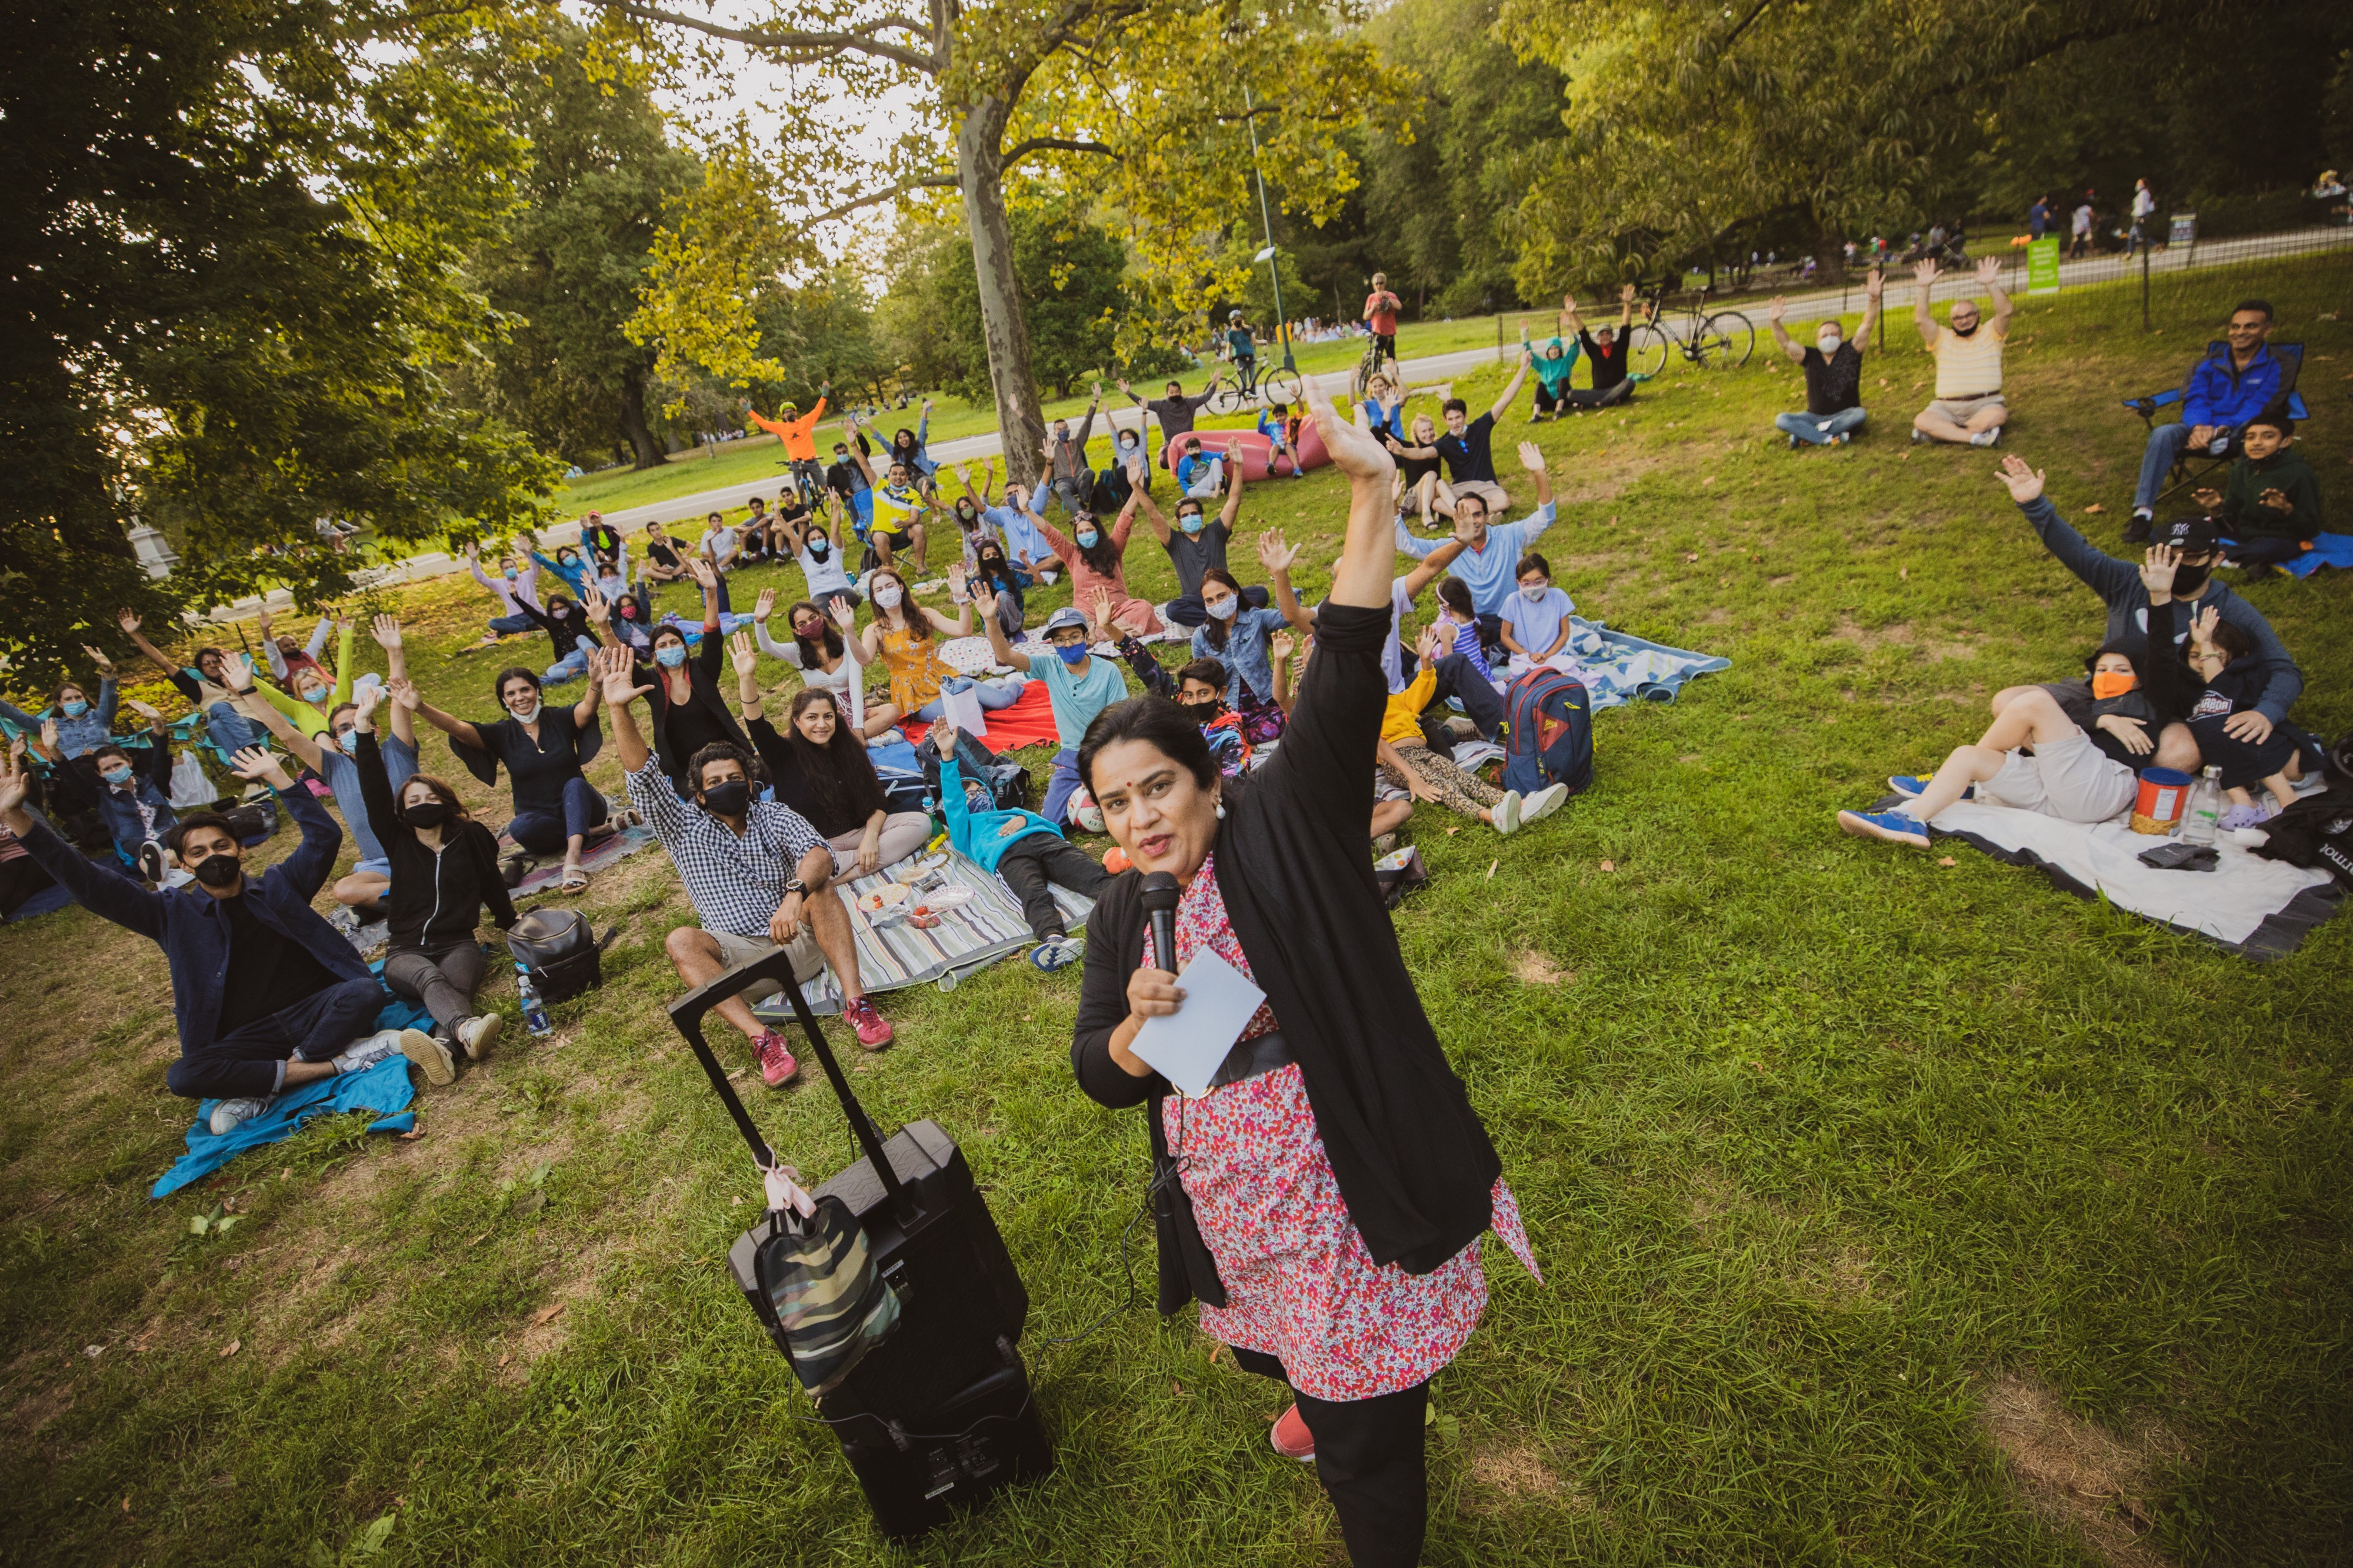 A comedian stands in front of an outdoor audience in the park, everyone cheering